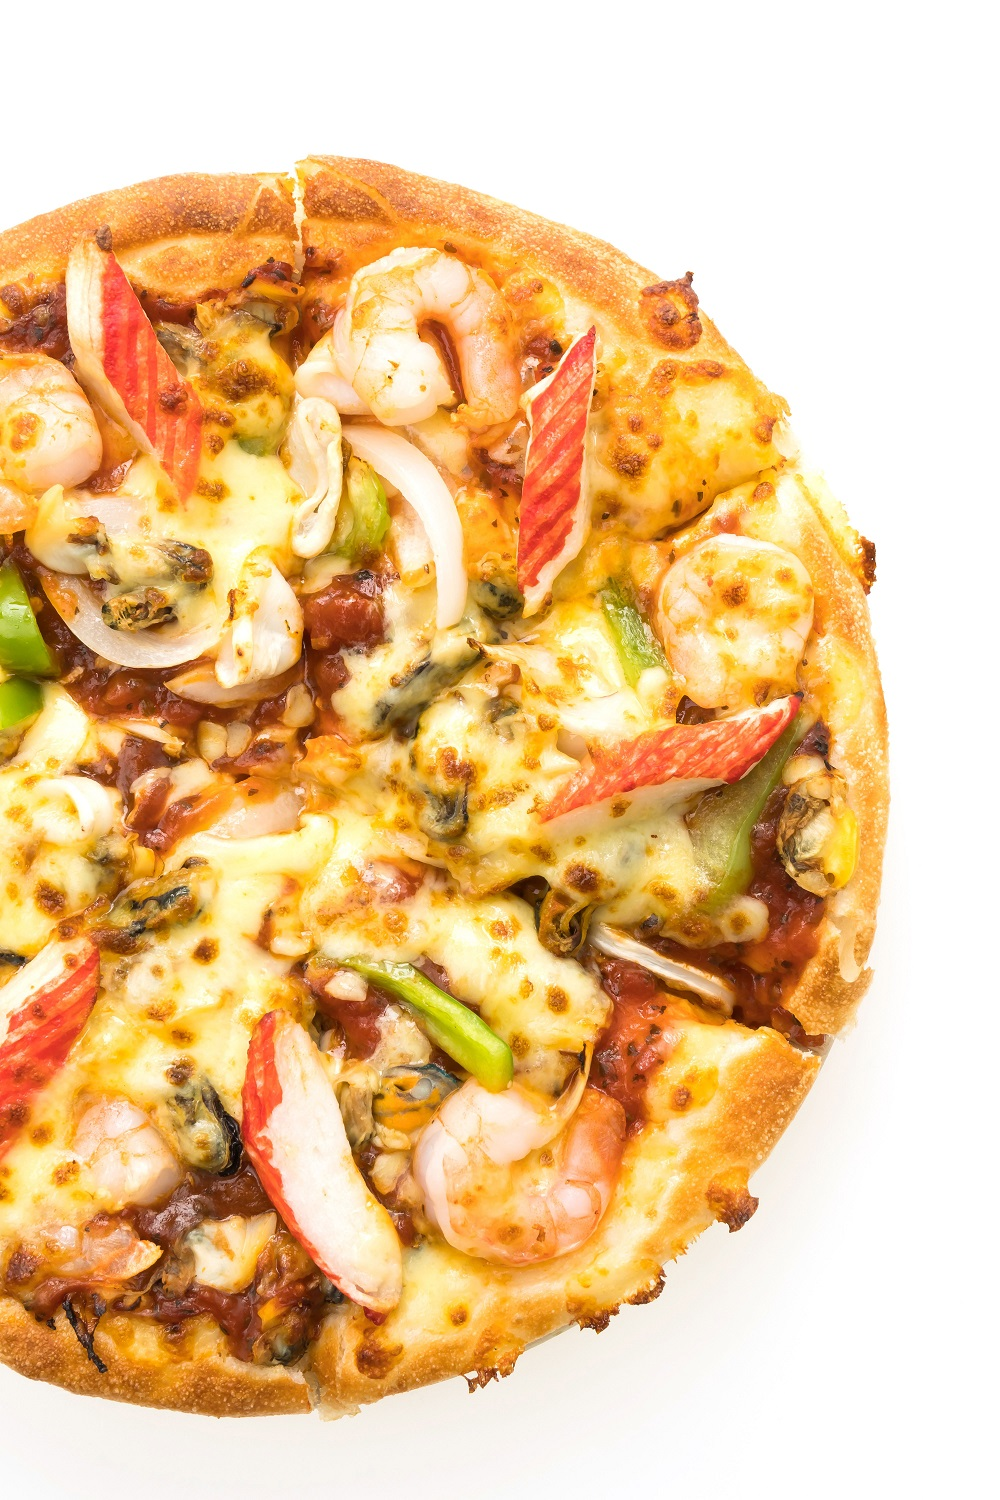 pizza with delicious toppings